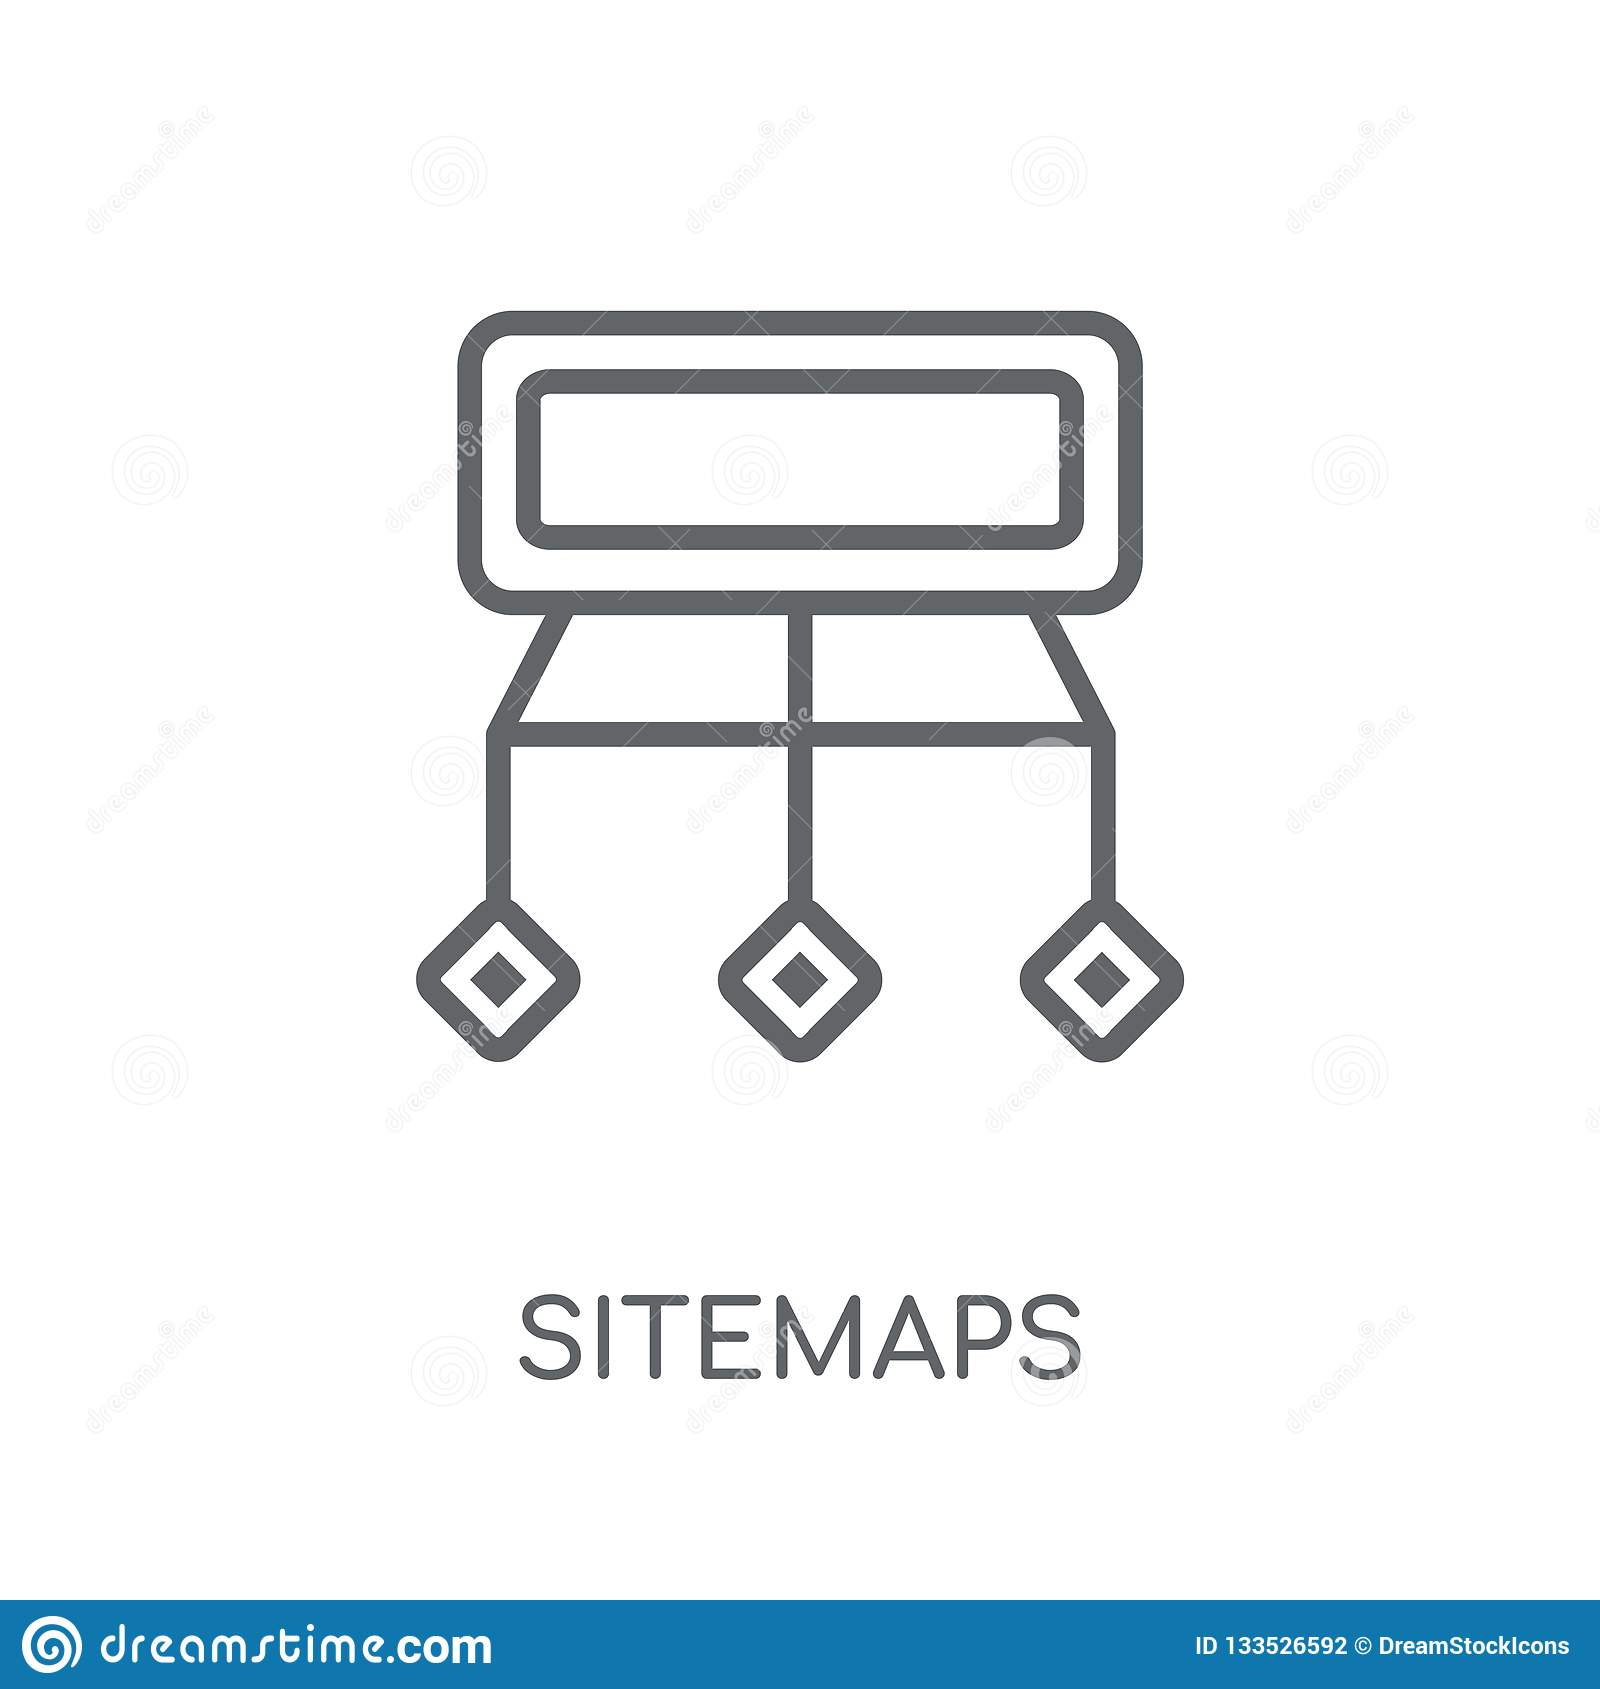 Sitemaps linear icon. Modern outline Sitemaps logo concept on wh